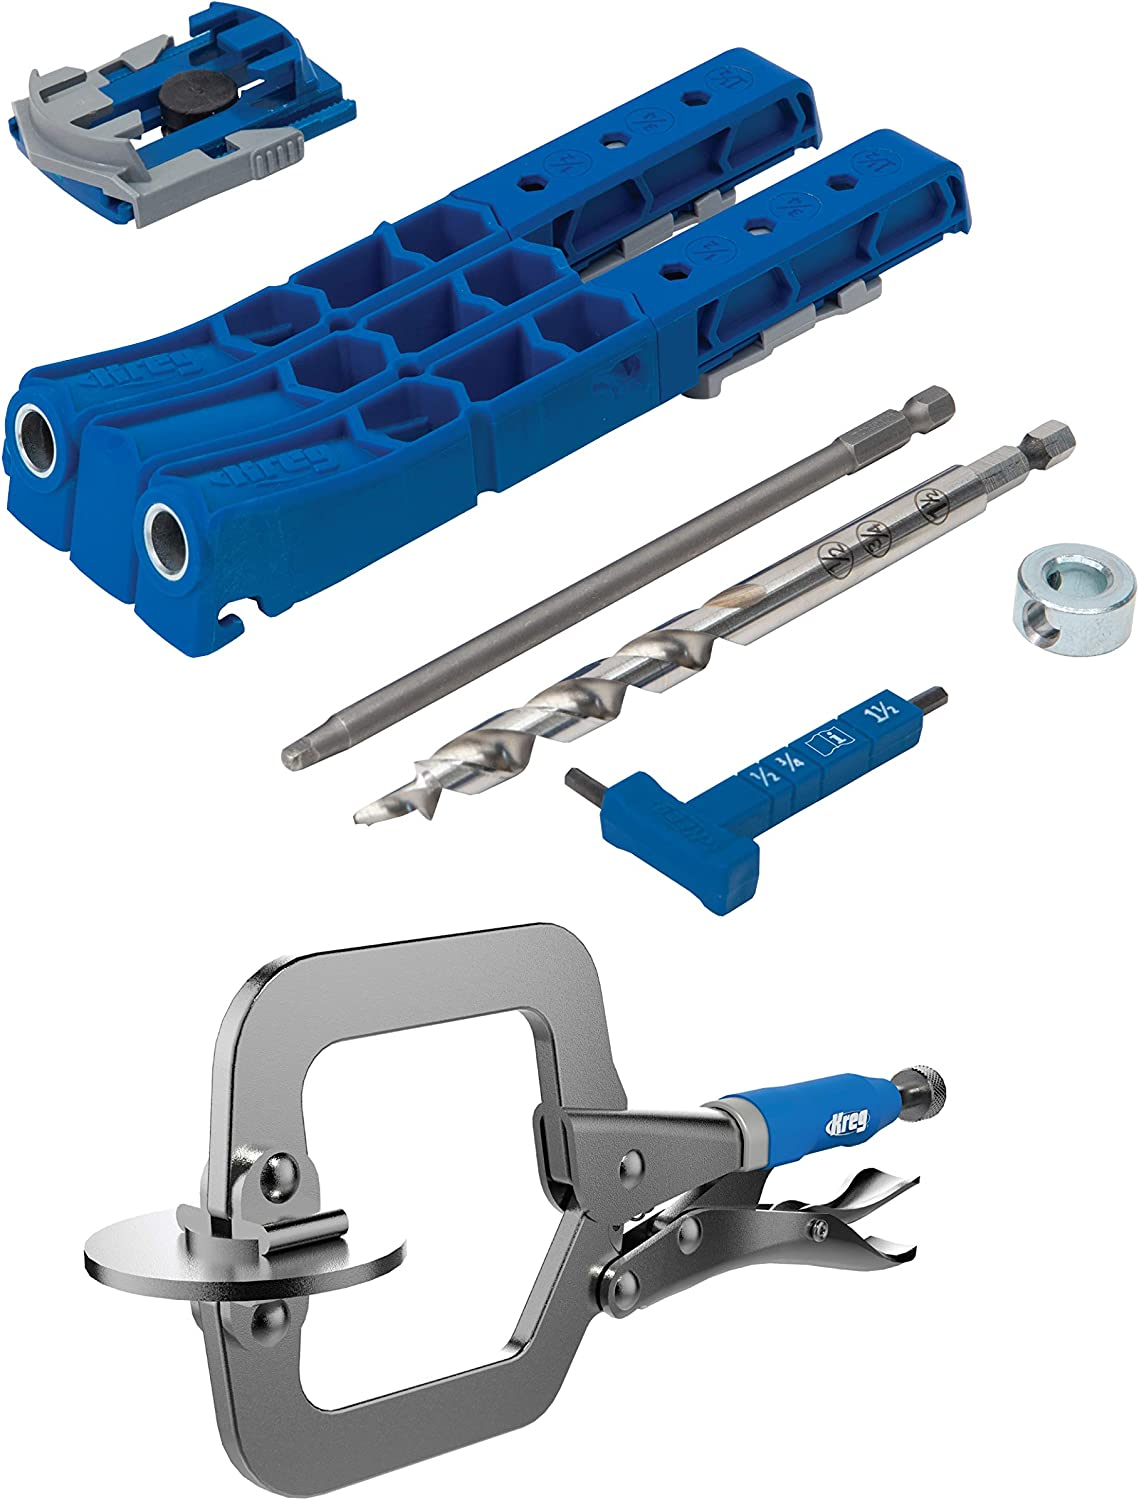 Kreg Pocket Hole Jig 320 with KHC-MICRO 2 inch Classic Face Frame Clamp (320 Jig w/Clamp) - -